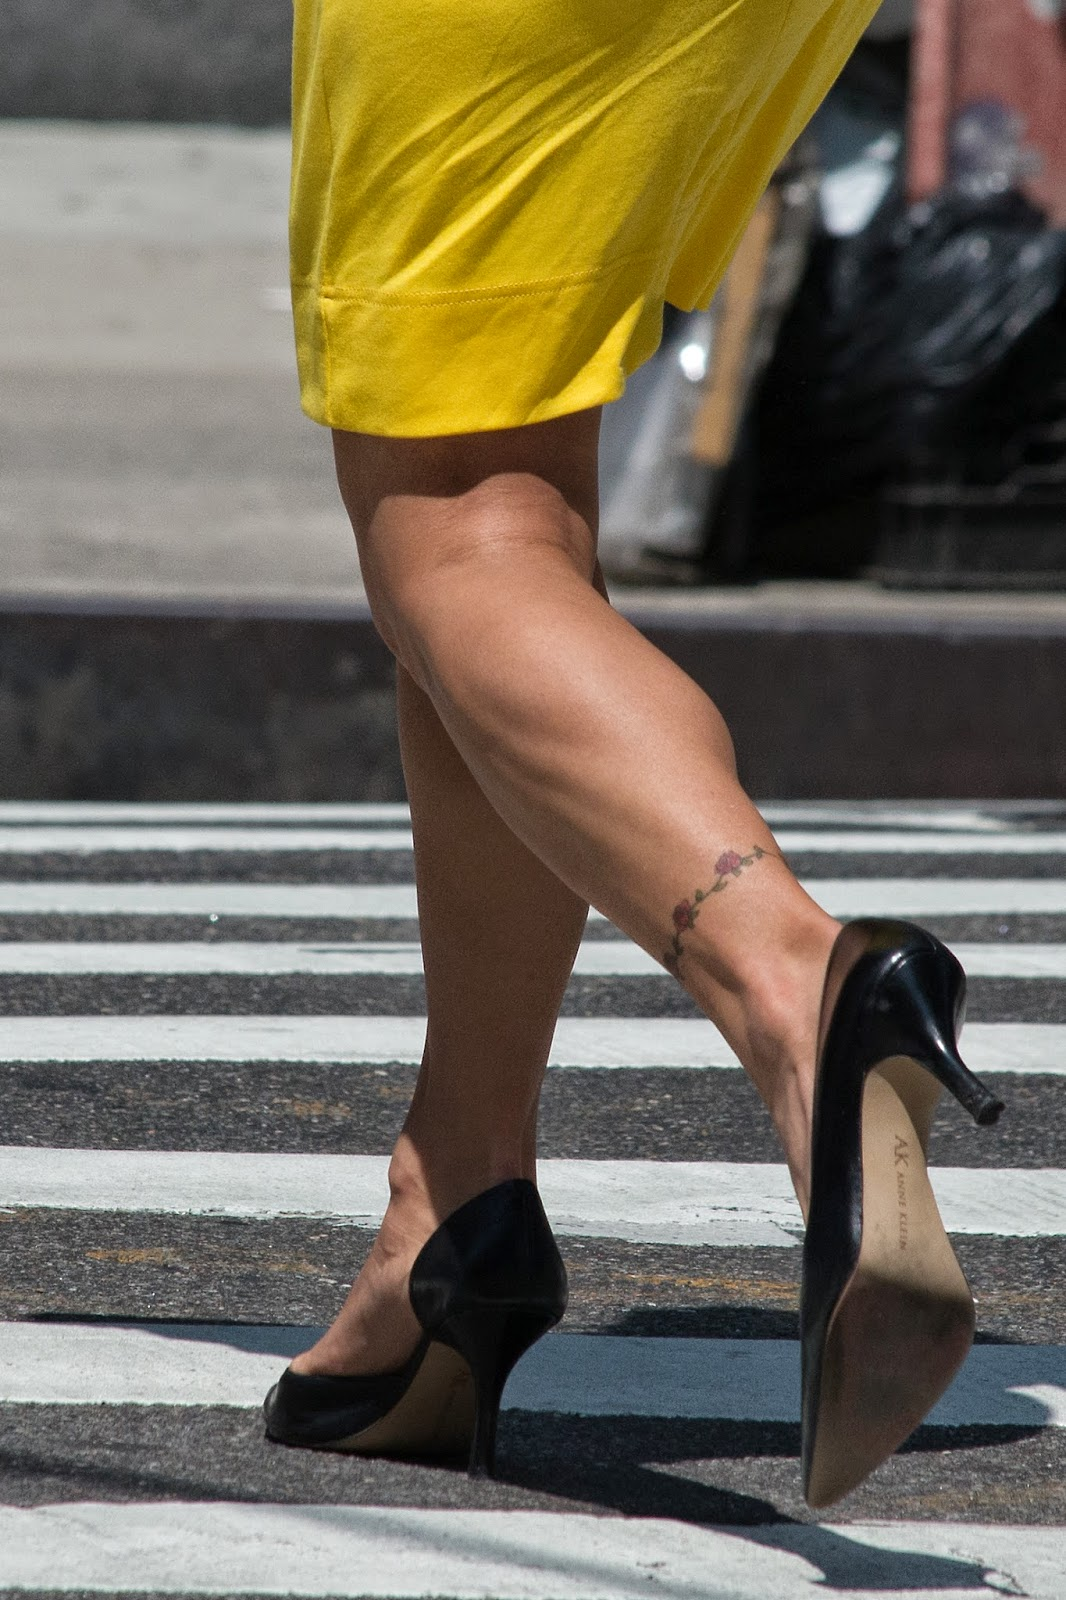 muscular calves and heels on the street